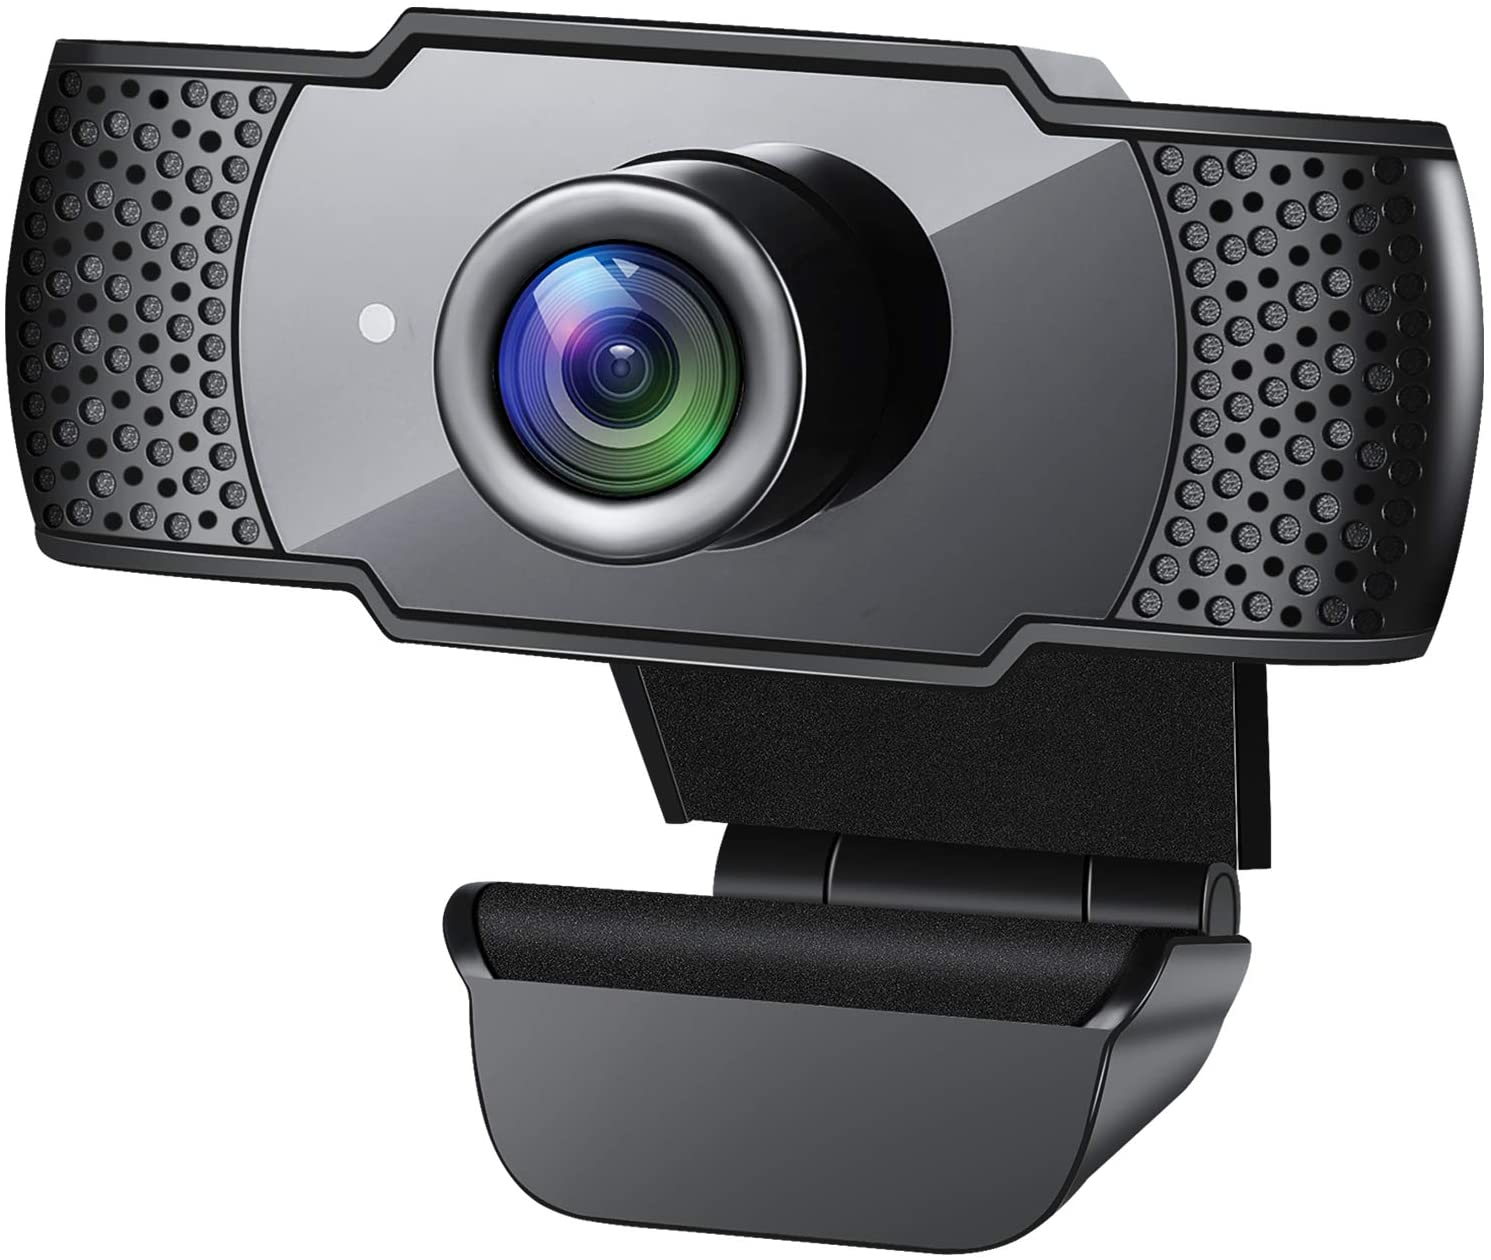 GESMA 1080P HD Streaming USB Computer Webcam